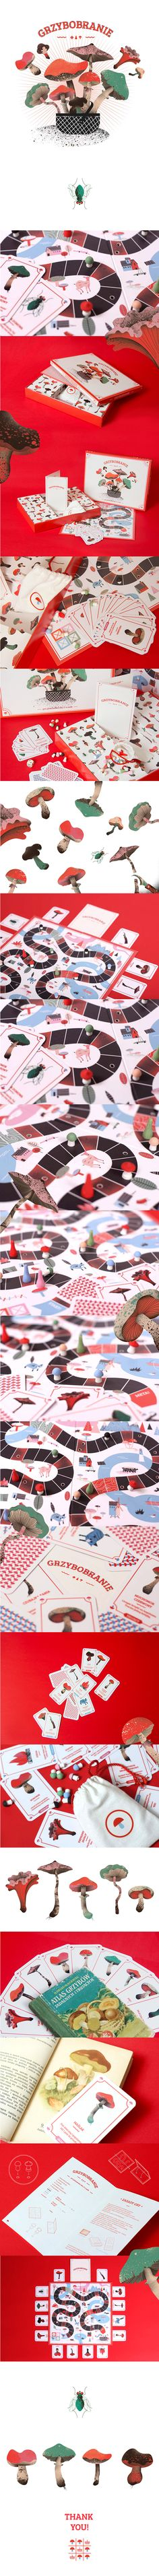 GRZYBOBRANIE - Mushrooming Board Game on Behance board game http://xboxpsp.com/ppost/121315783688517275/